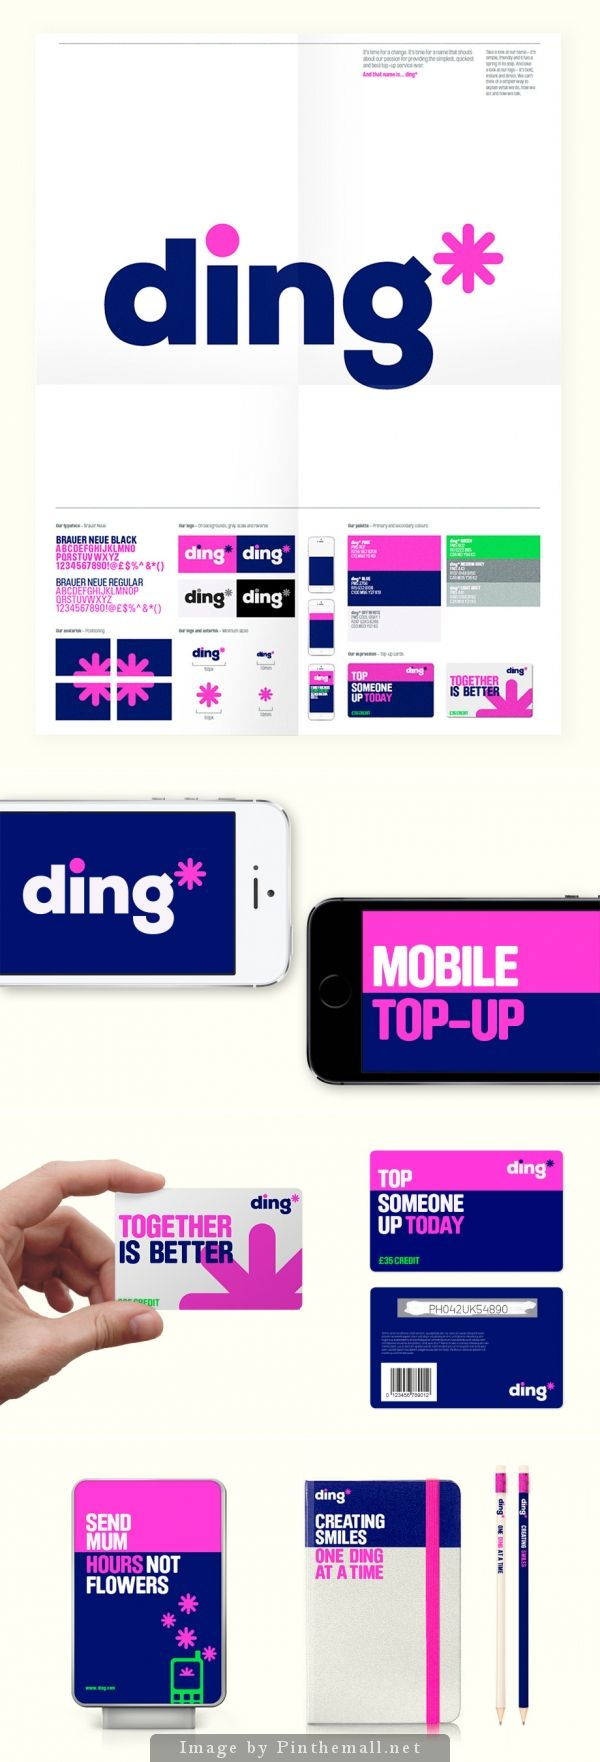 http://www.underconsideration.com/brandnew/archives/new_name_logo_and_identity_for_ding_by_dixonbaxi.php#.U_hpDGK9KK1... - a grouped images ...